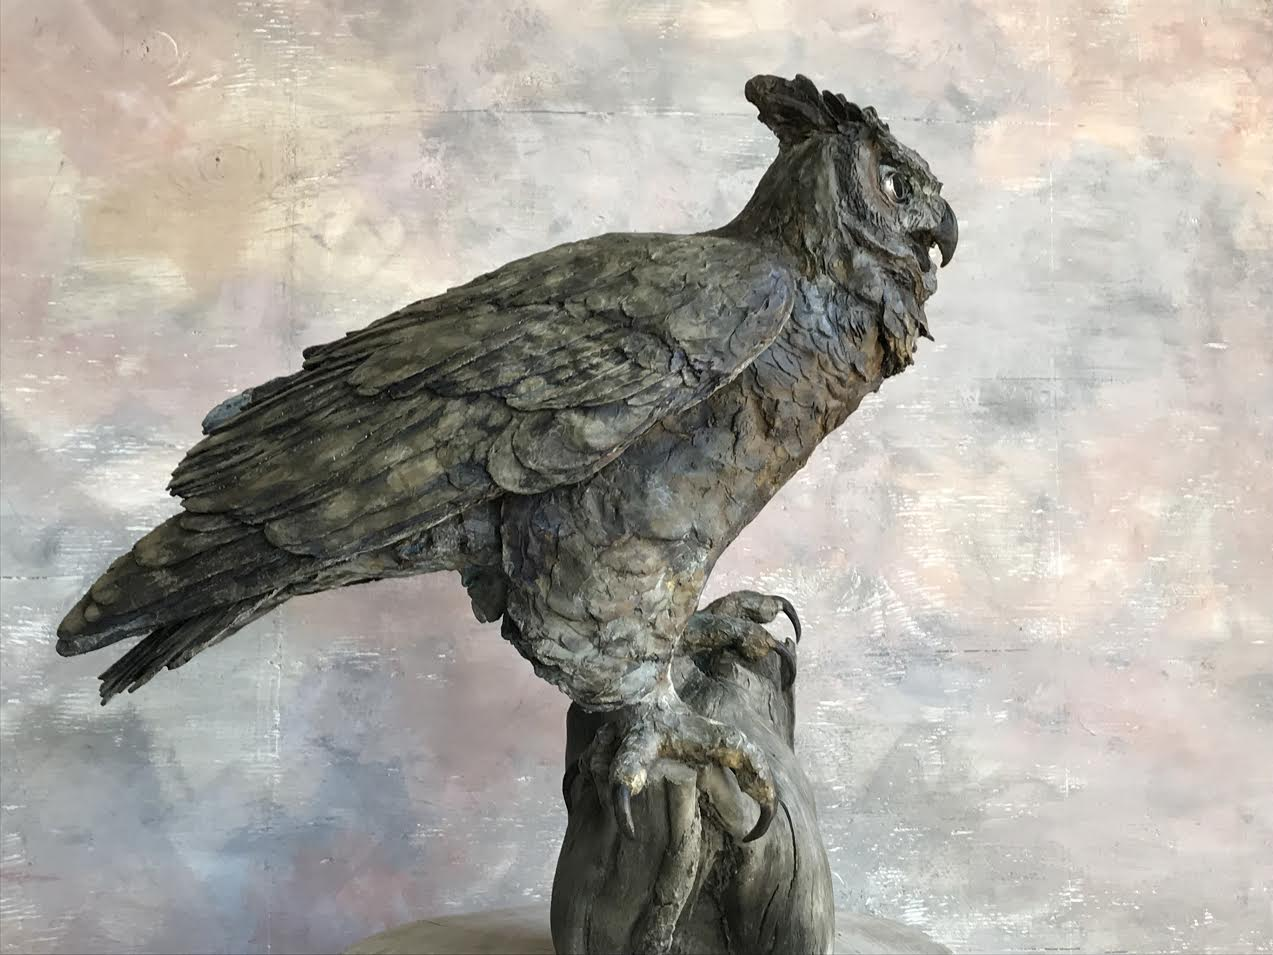 From Start to Finish: The Making of Big Al the Great Horned Owl - Vulture Sculpture brings her newest creation to life in this video capturing the process from wax to bronze